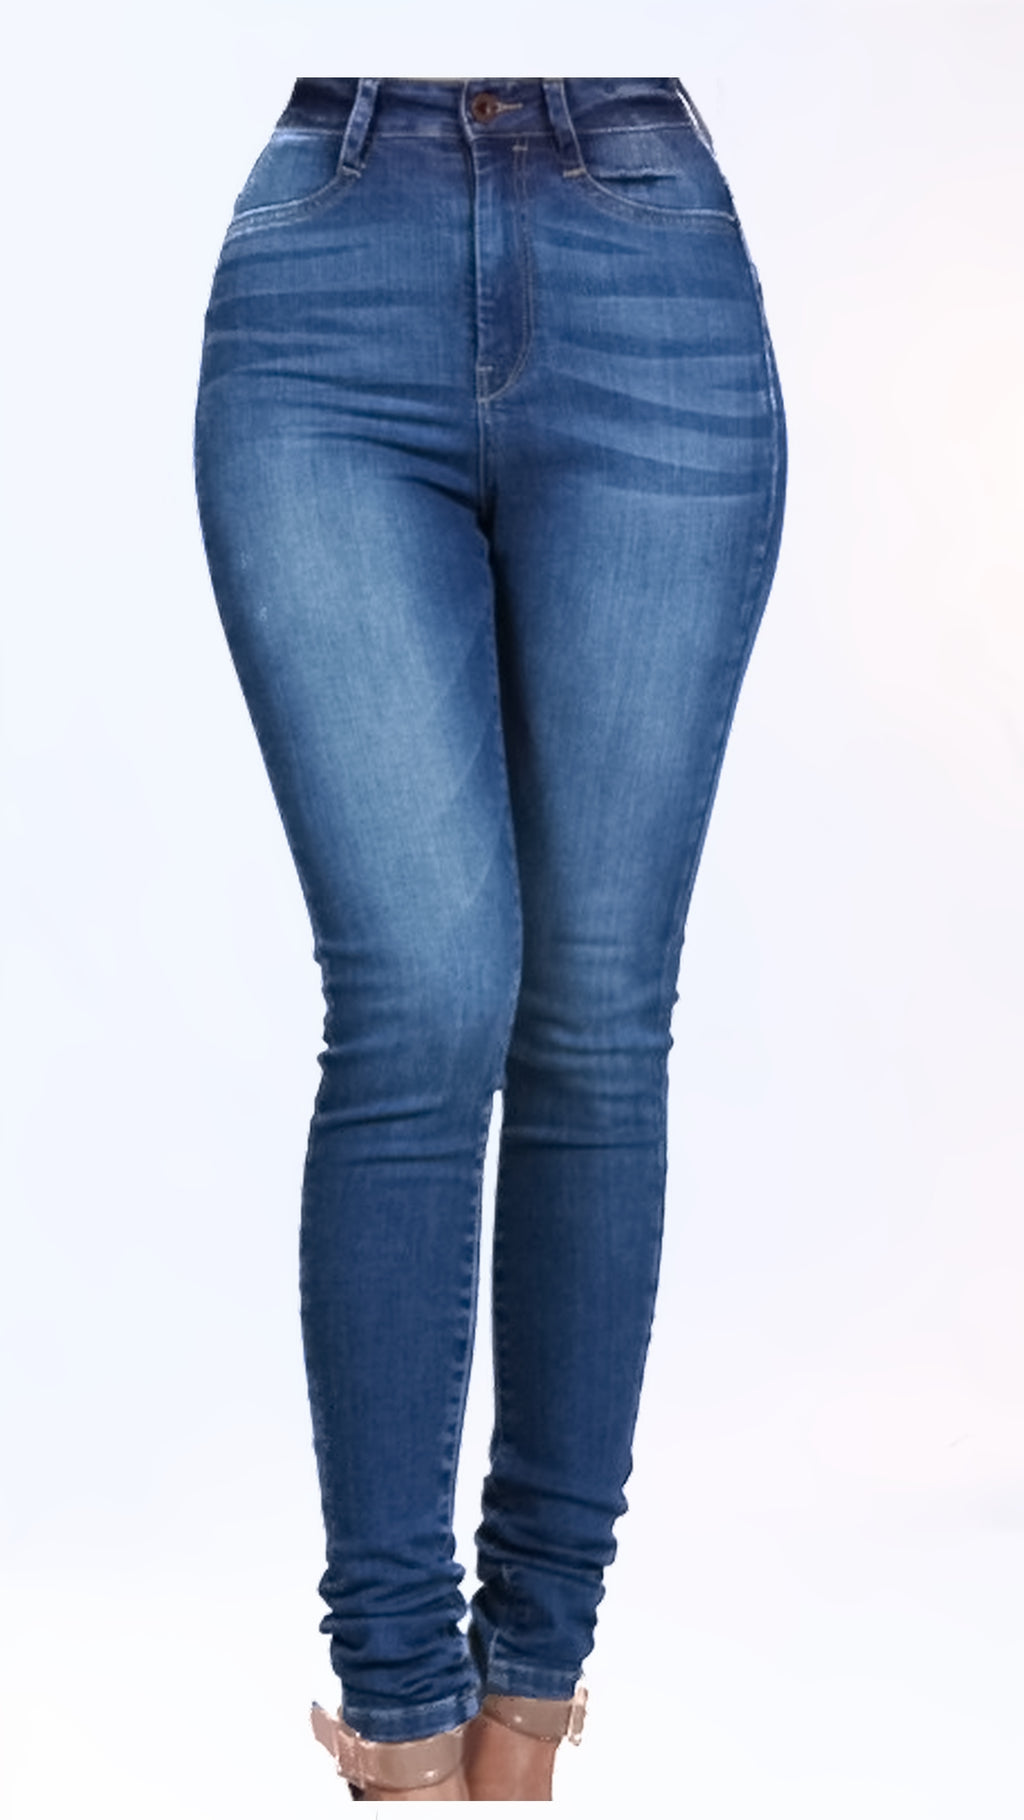 Classic High Waist Skinny Jeans - ARUZE BOUTIQUE